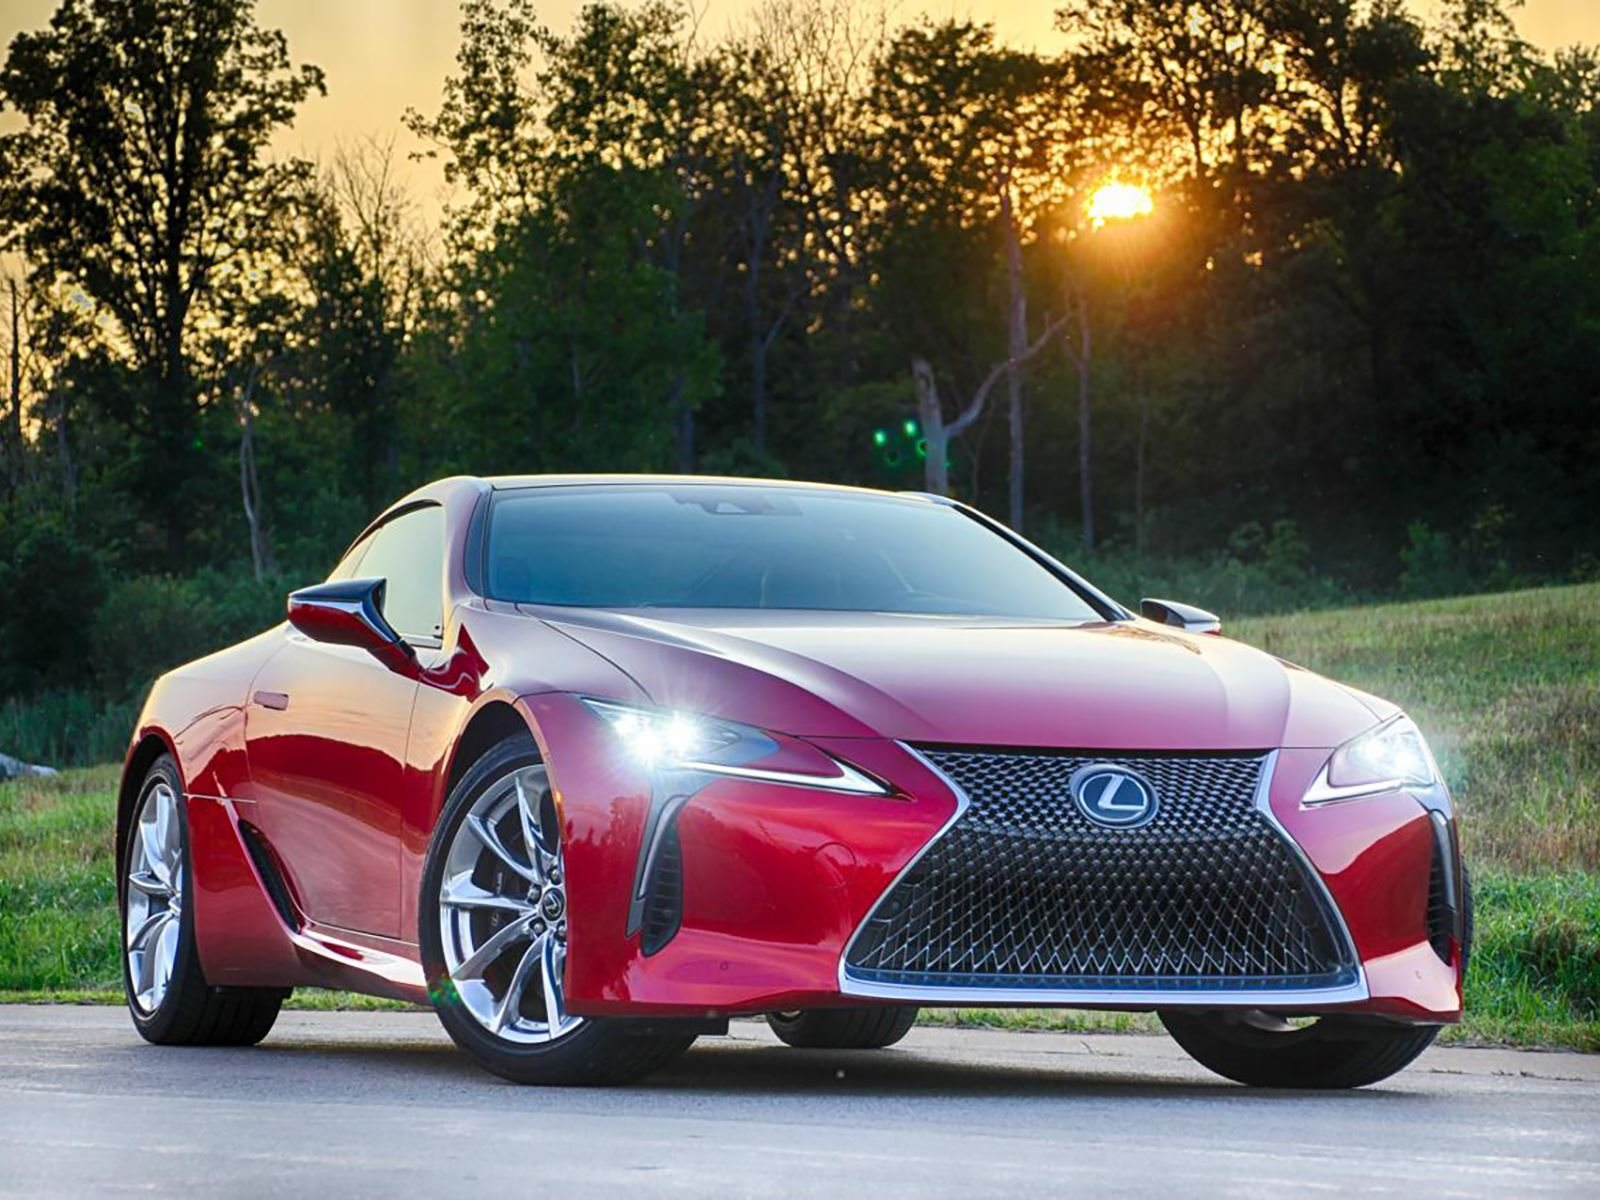 Lexus Cars: These Toyota And Lexus Cars Are At Risk Of Catching Fire